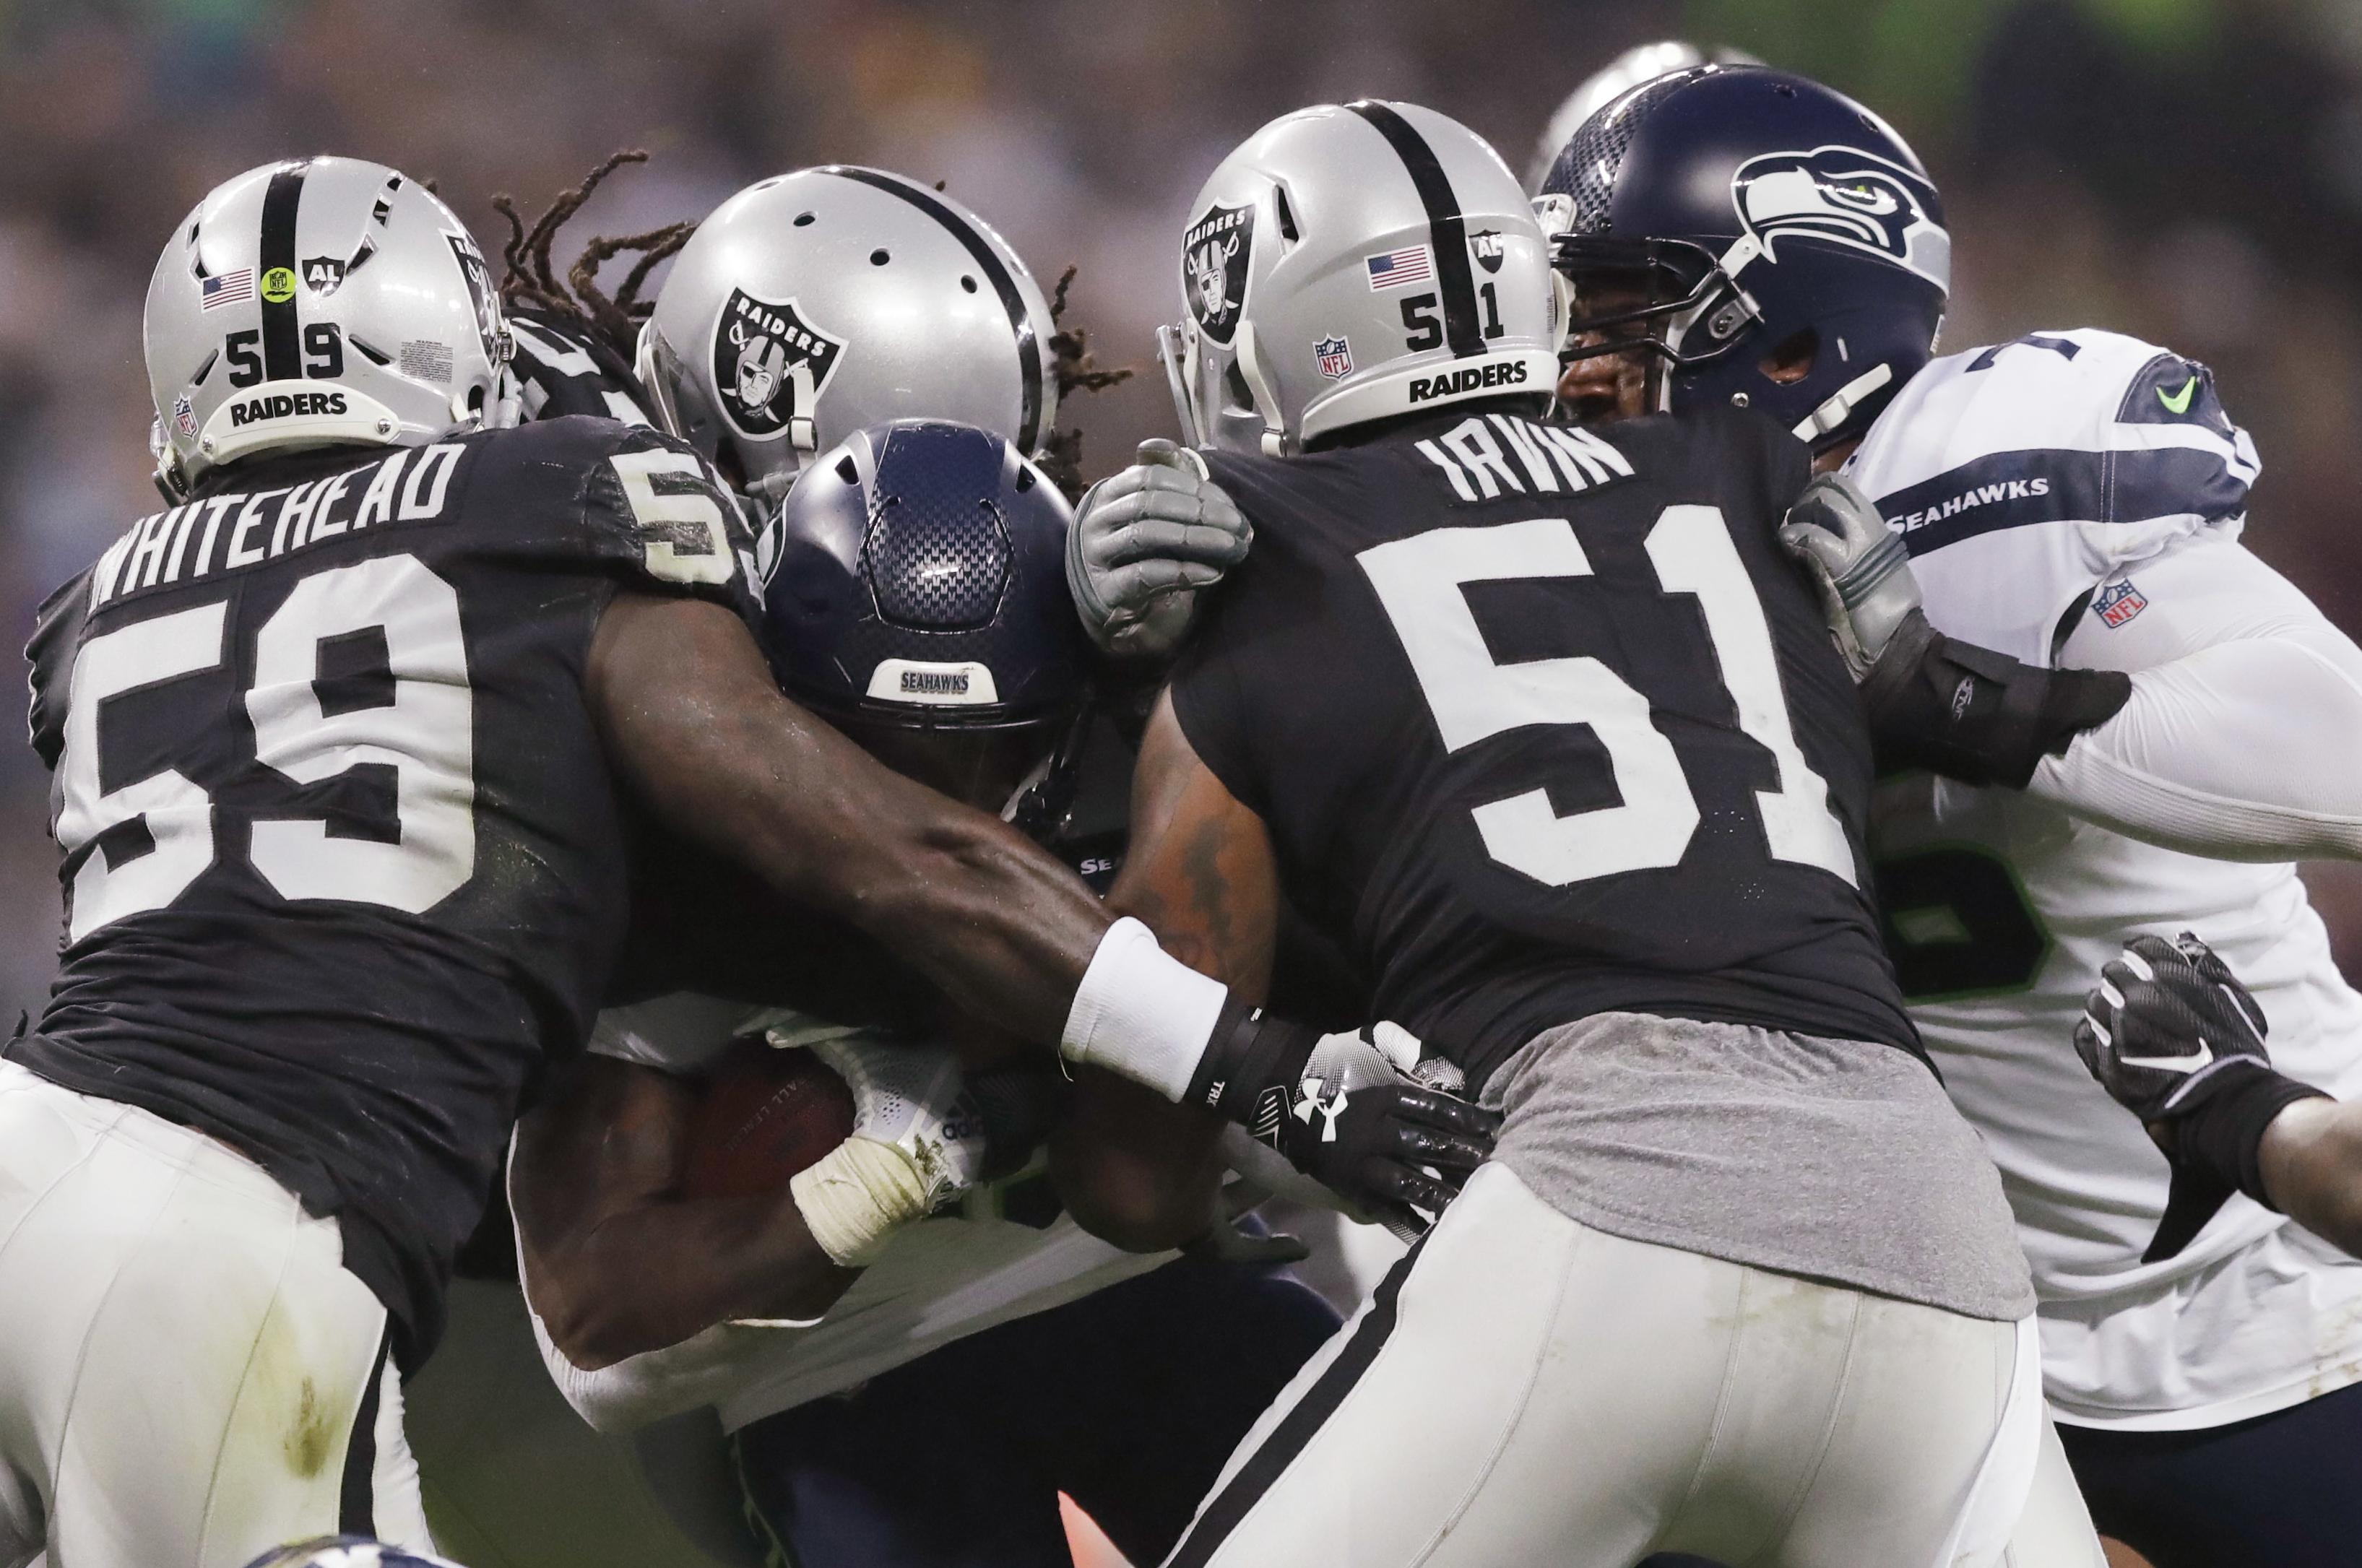 Grip On Sports The Seahawks Dominated But Tougher Weeks Are